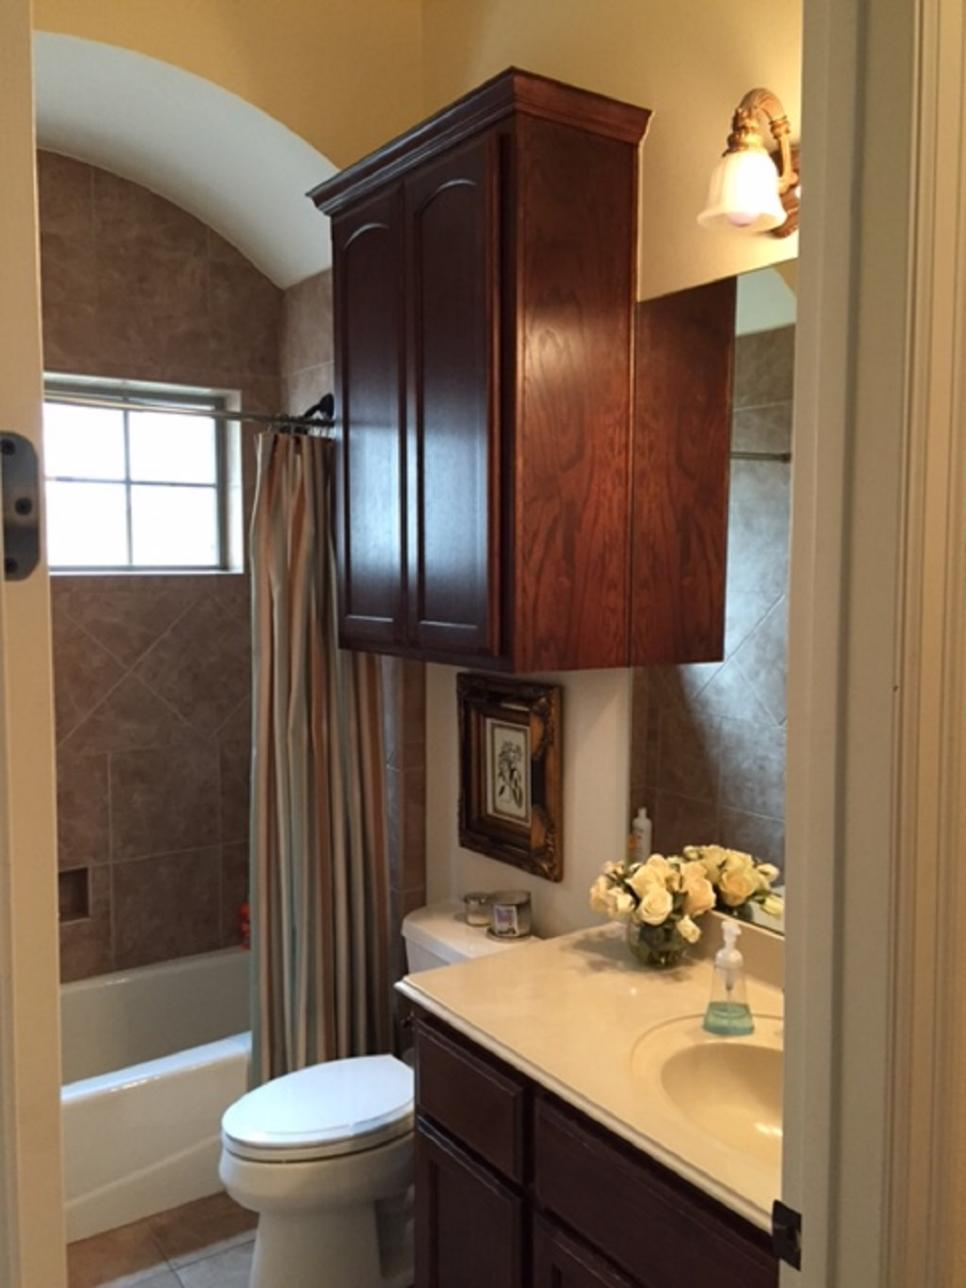 Before and after bathroom remodels on a budget hgtv for Bathroom design and remodel